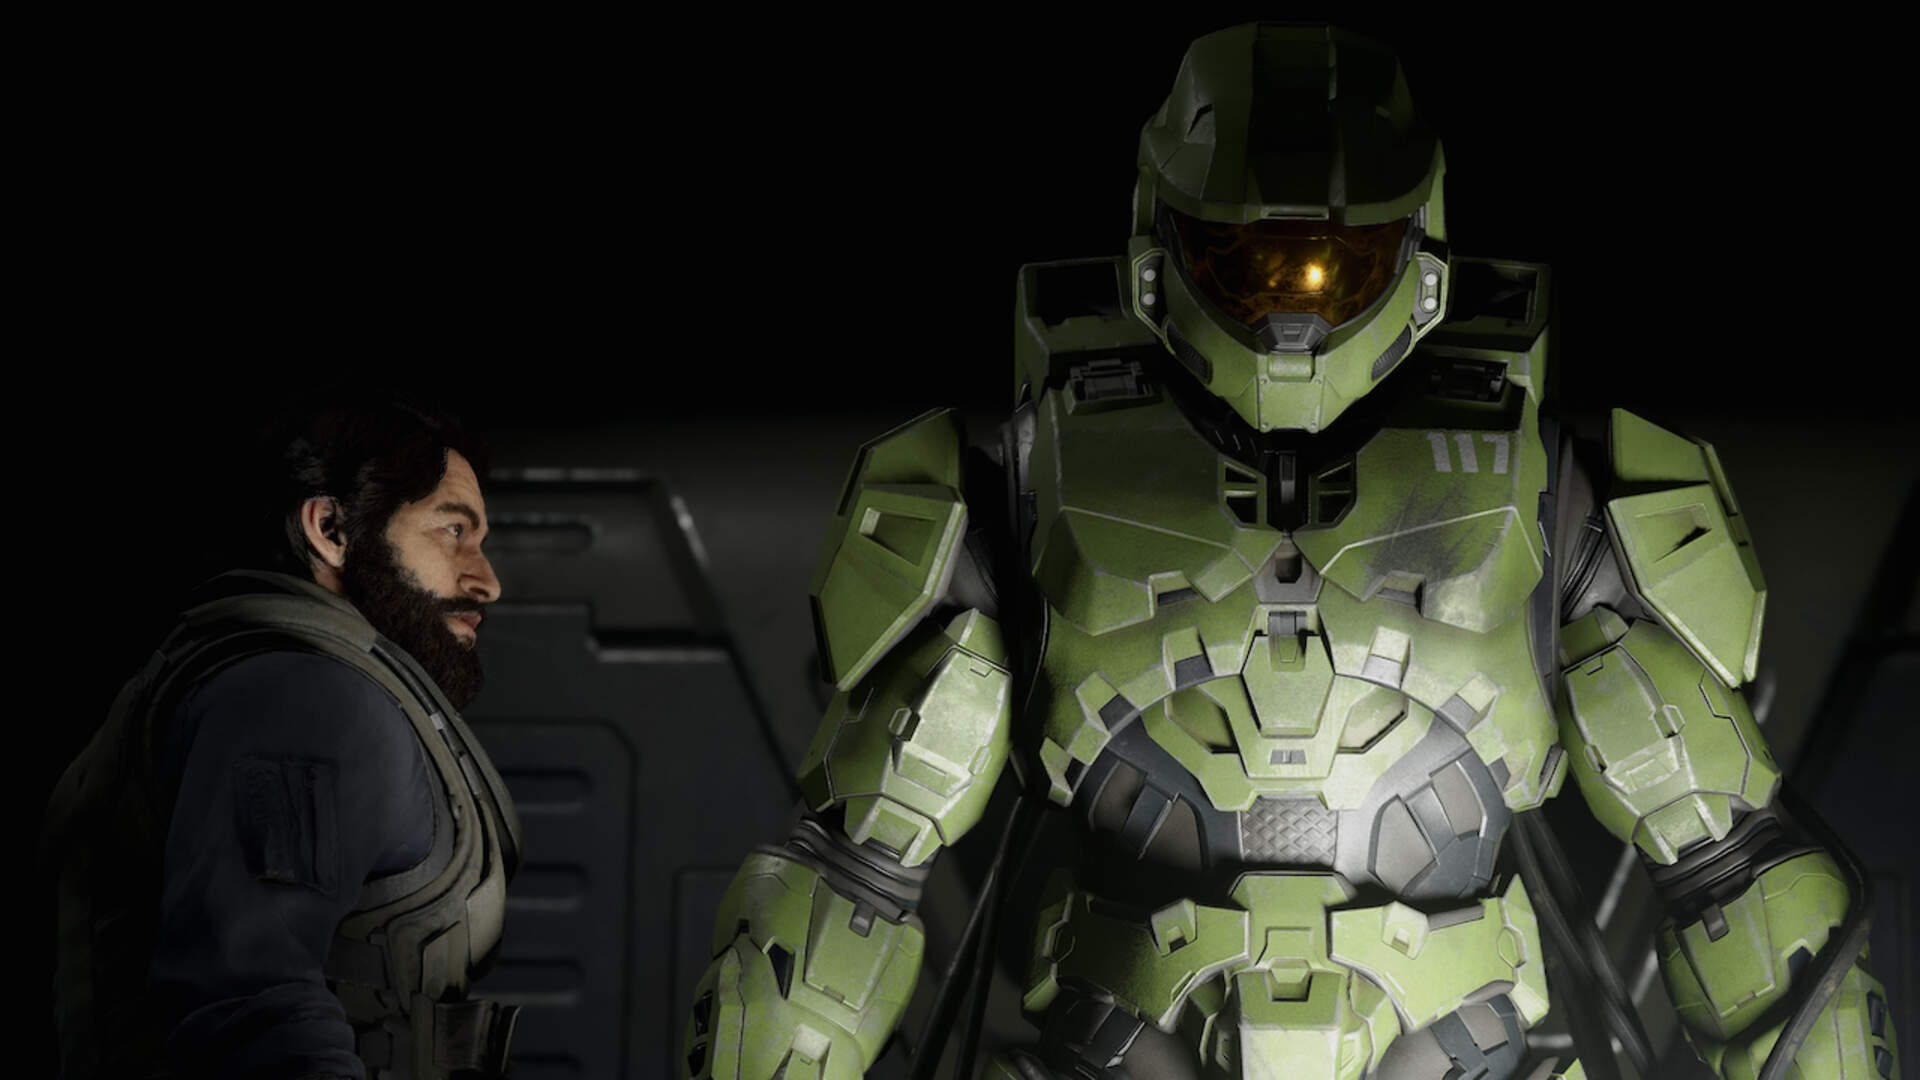 Phil Spencer Says Xbox Series X's Launch Likely Won't Move Even if Halo Infinite Is Delayed